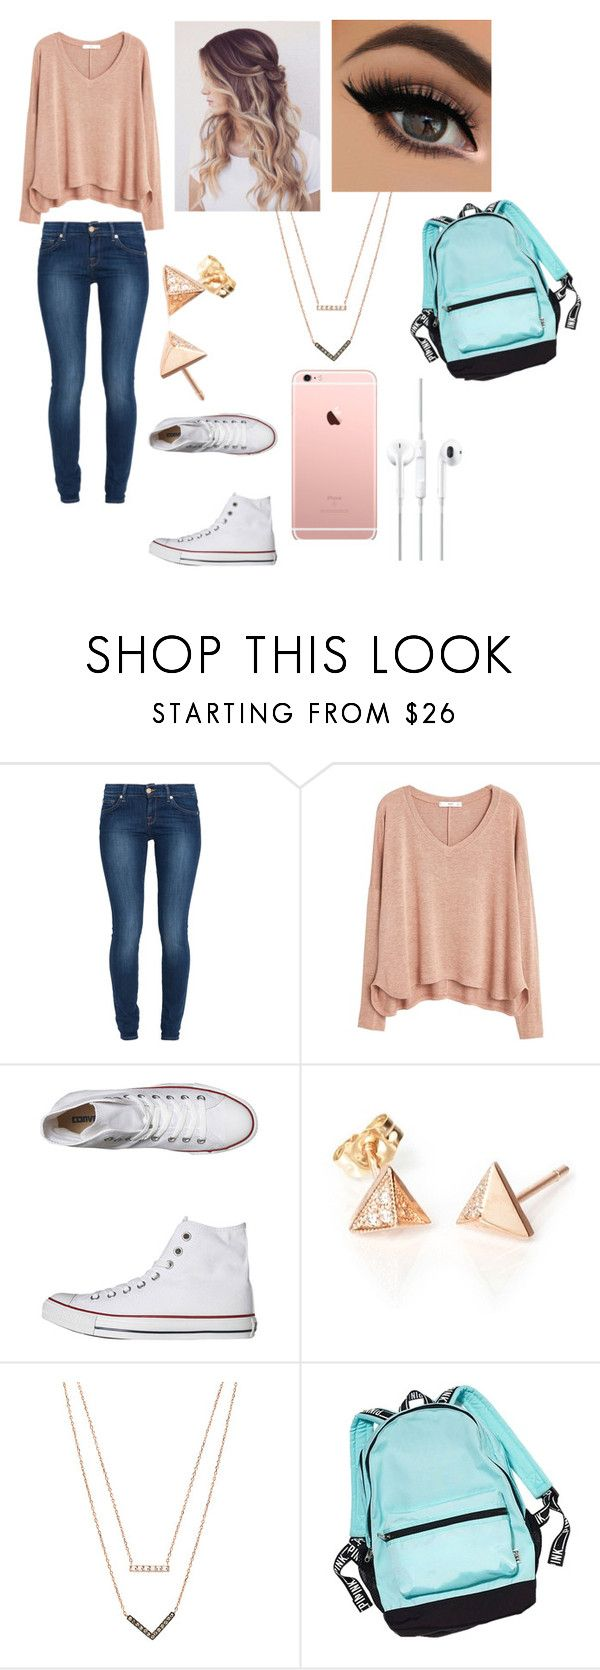 """School outfit"" by imaray98 ❤ liked on Polyvore featuring 7 For All Mankind, MANGO, Converse, Michael Kors, women's clothing, women's fashion, women, female, woman and misses"